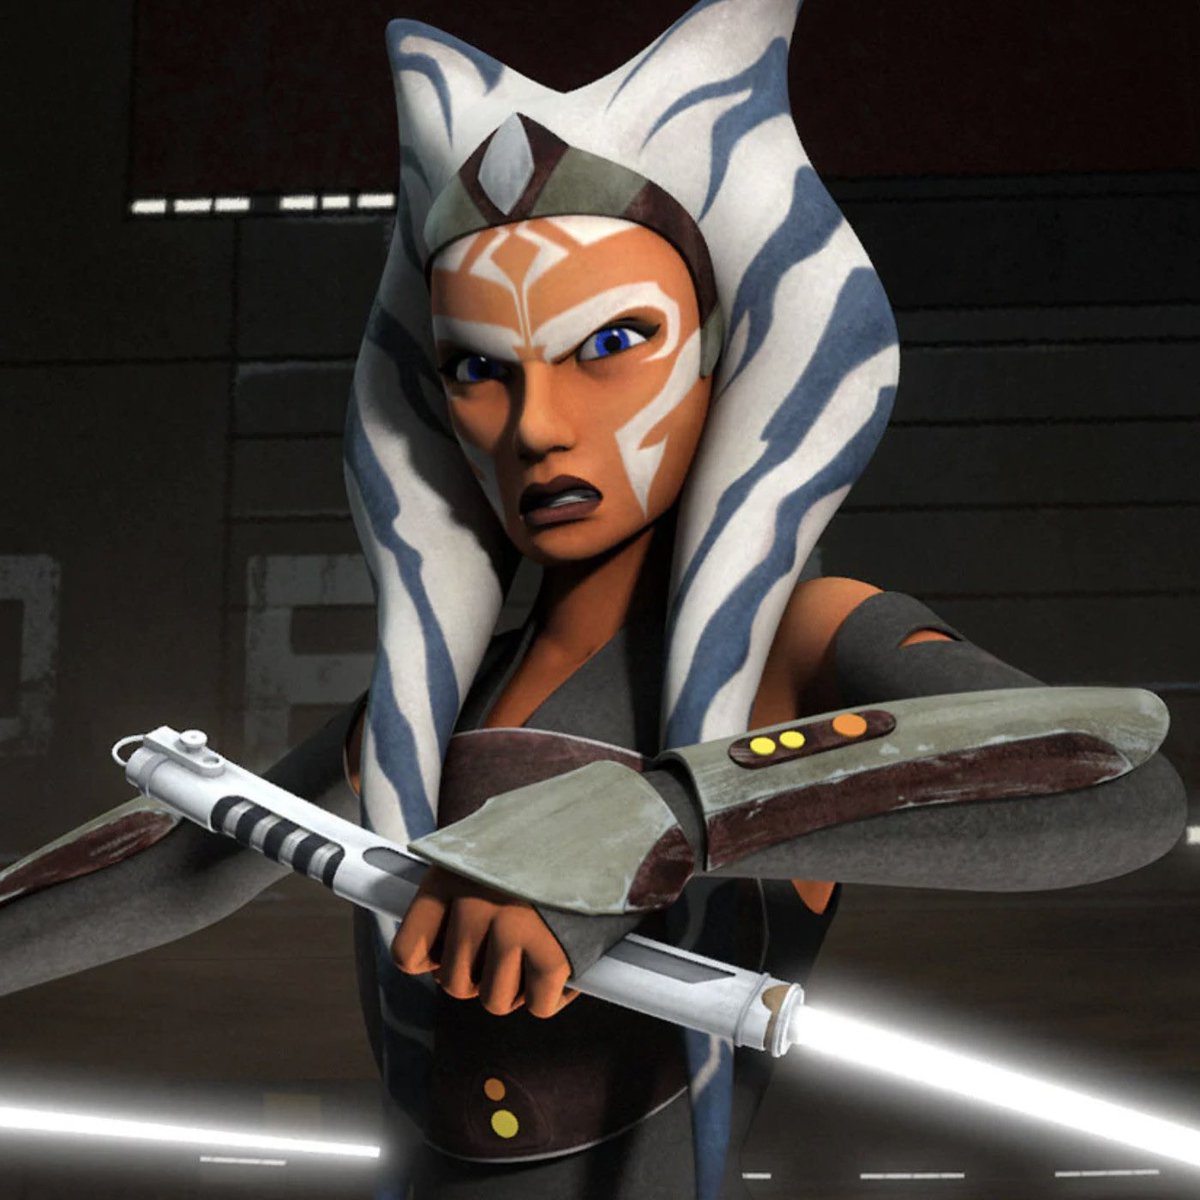 I always liked Ahsoka Tano from the Clone Wars series and wondered what happened to her when she grows up now I know #themandalorian #ahsokatano #thejedi